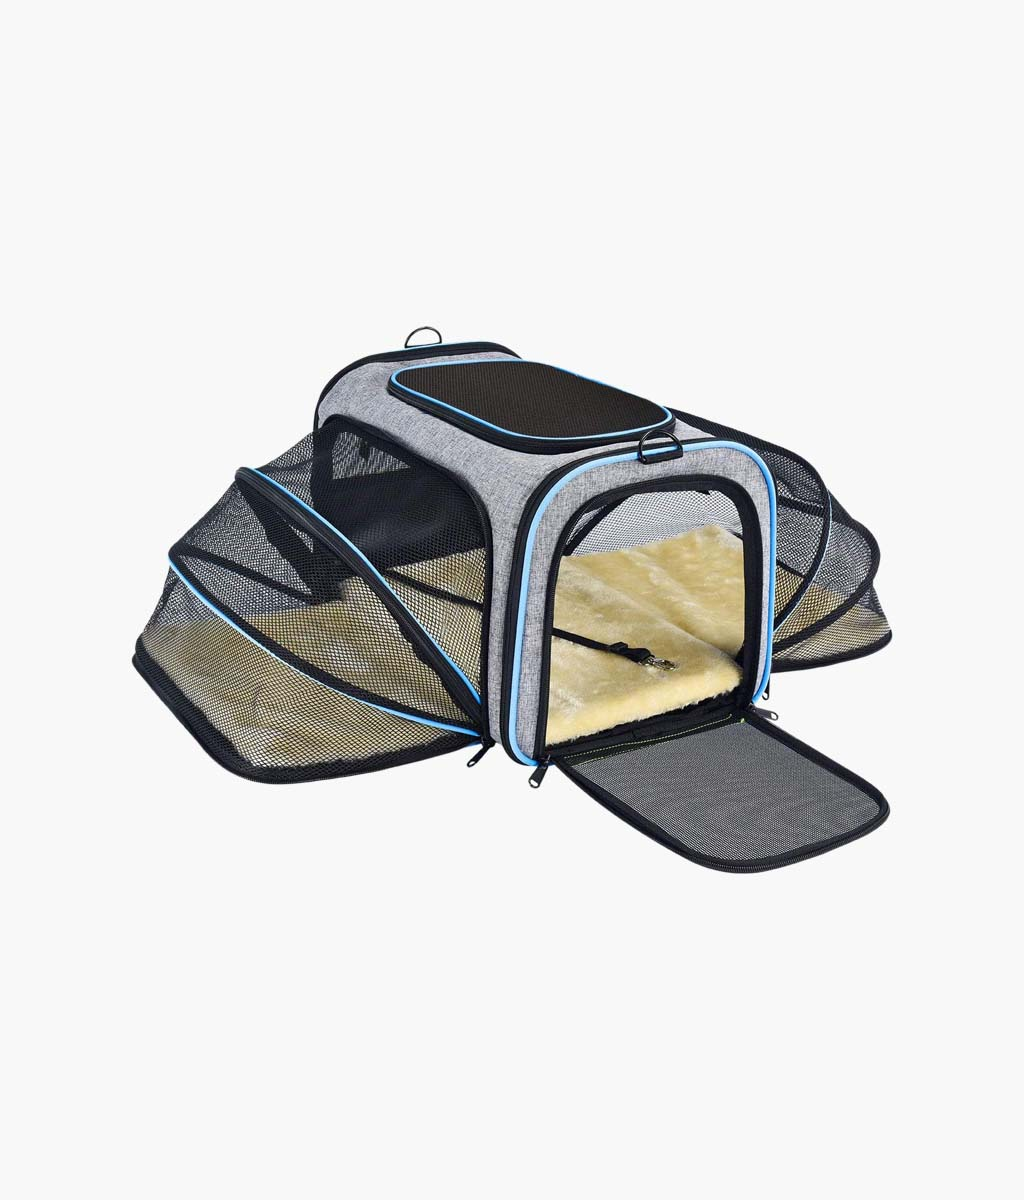 Expandable Soft-Sided Dog Carrier